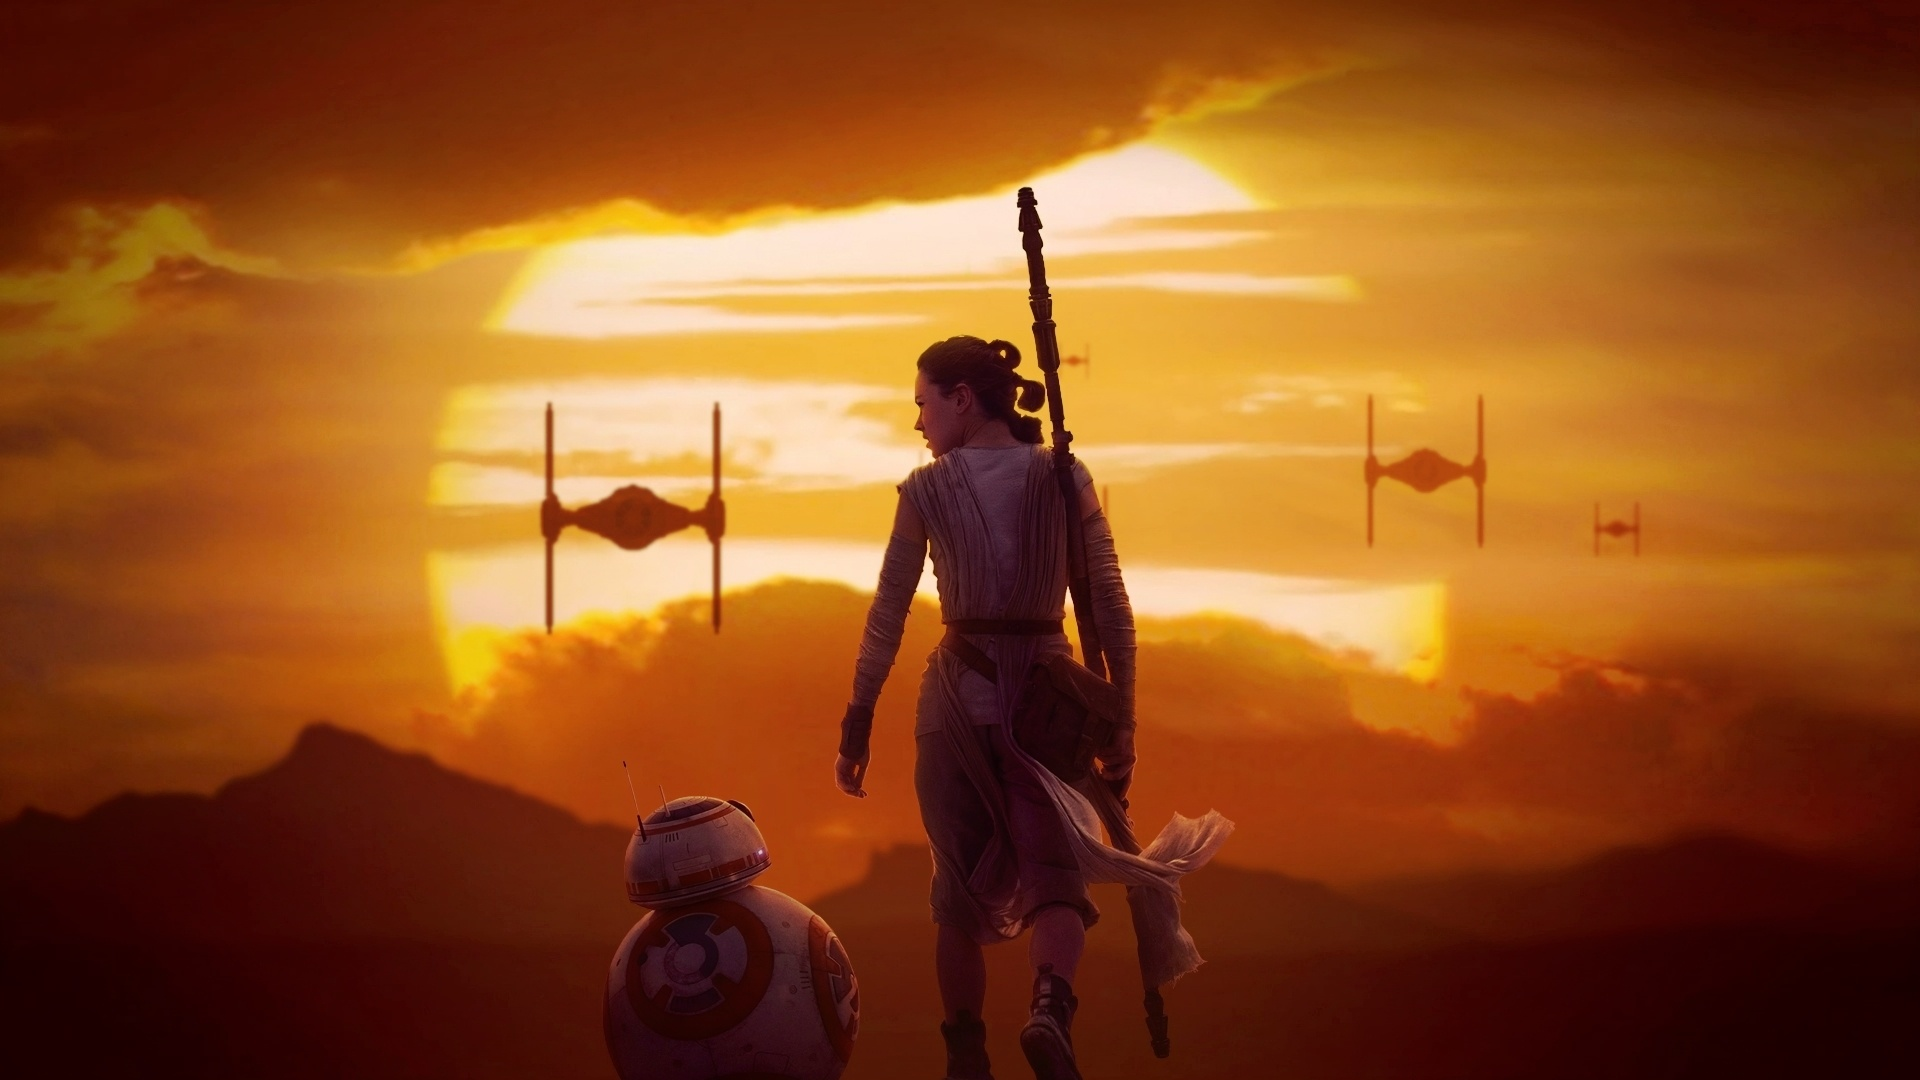 17 Best images about Star Wars Wallpapers on Pinterest | Rey star